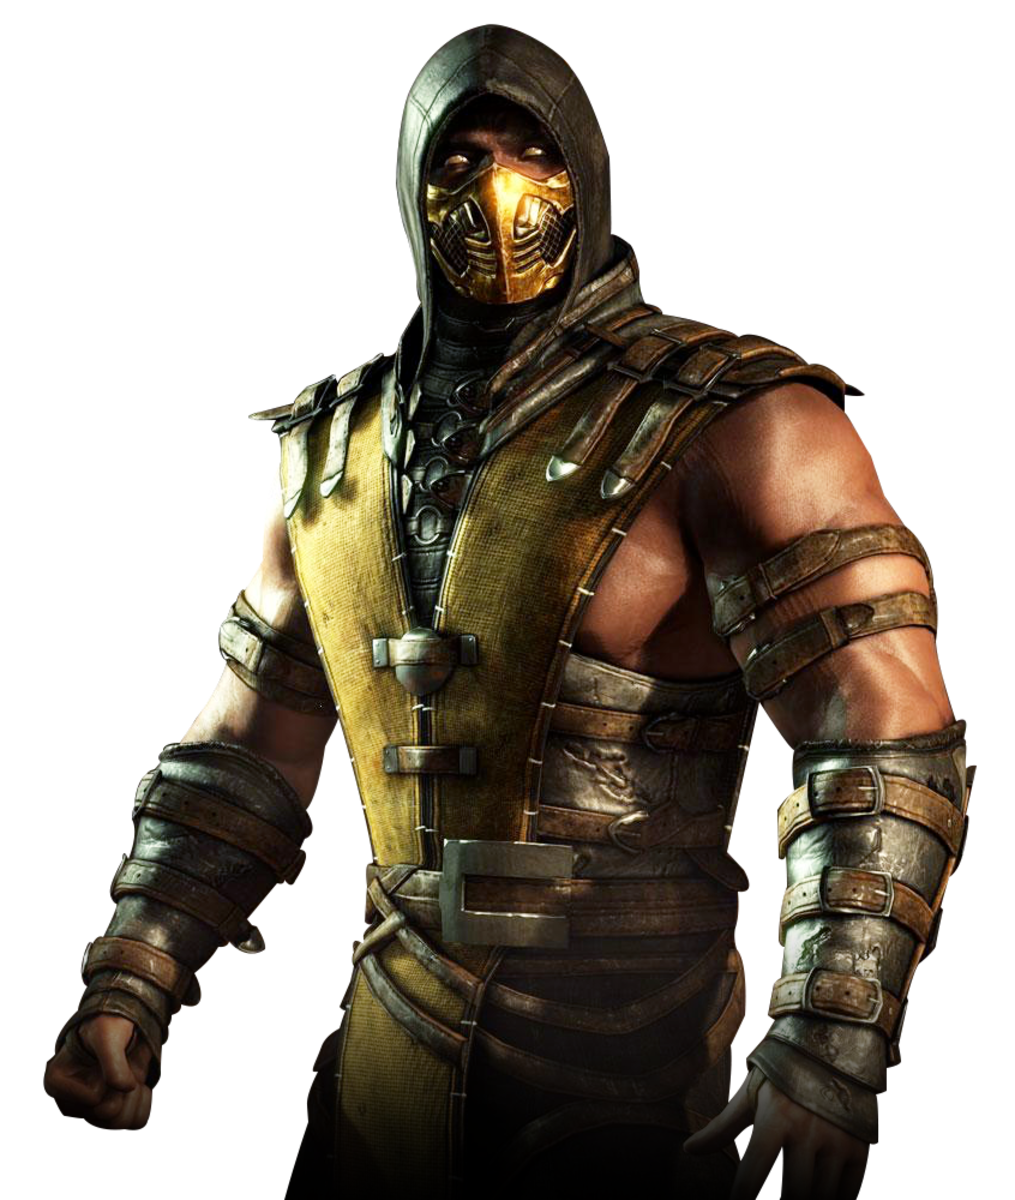 Mortal Kombat X: Scorpion - Complete Beginner Guide